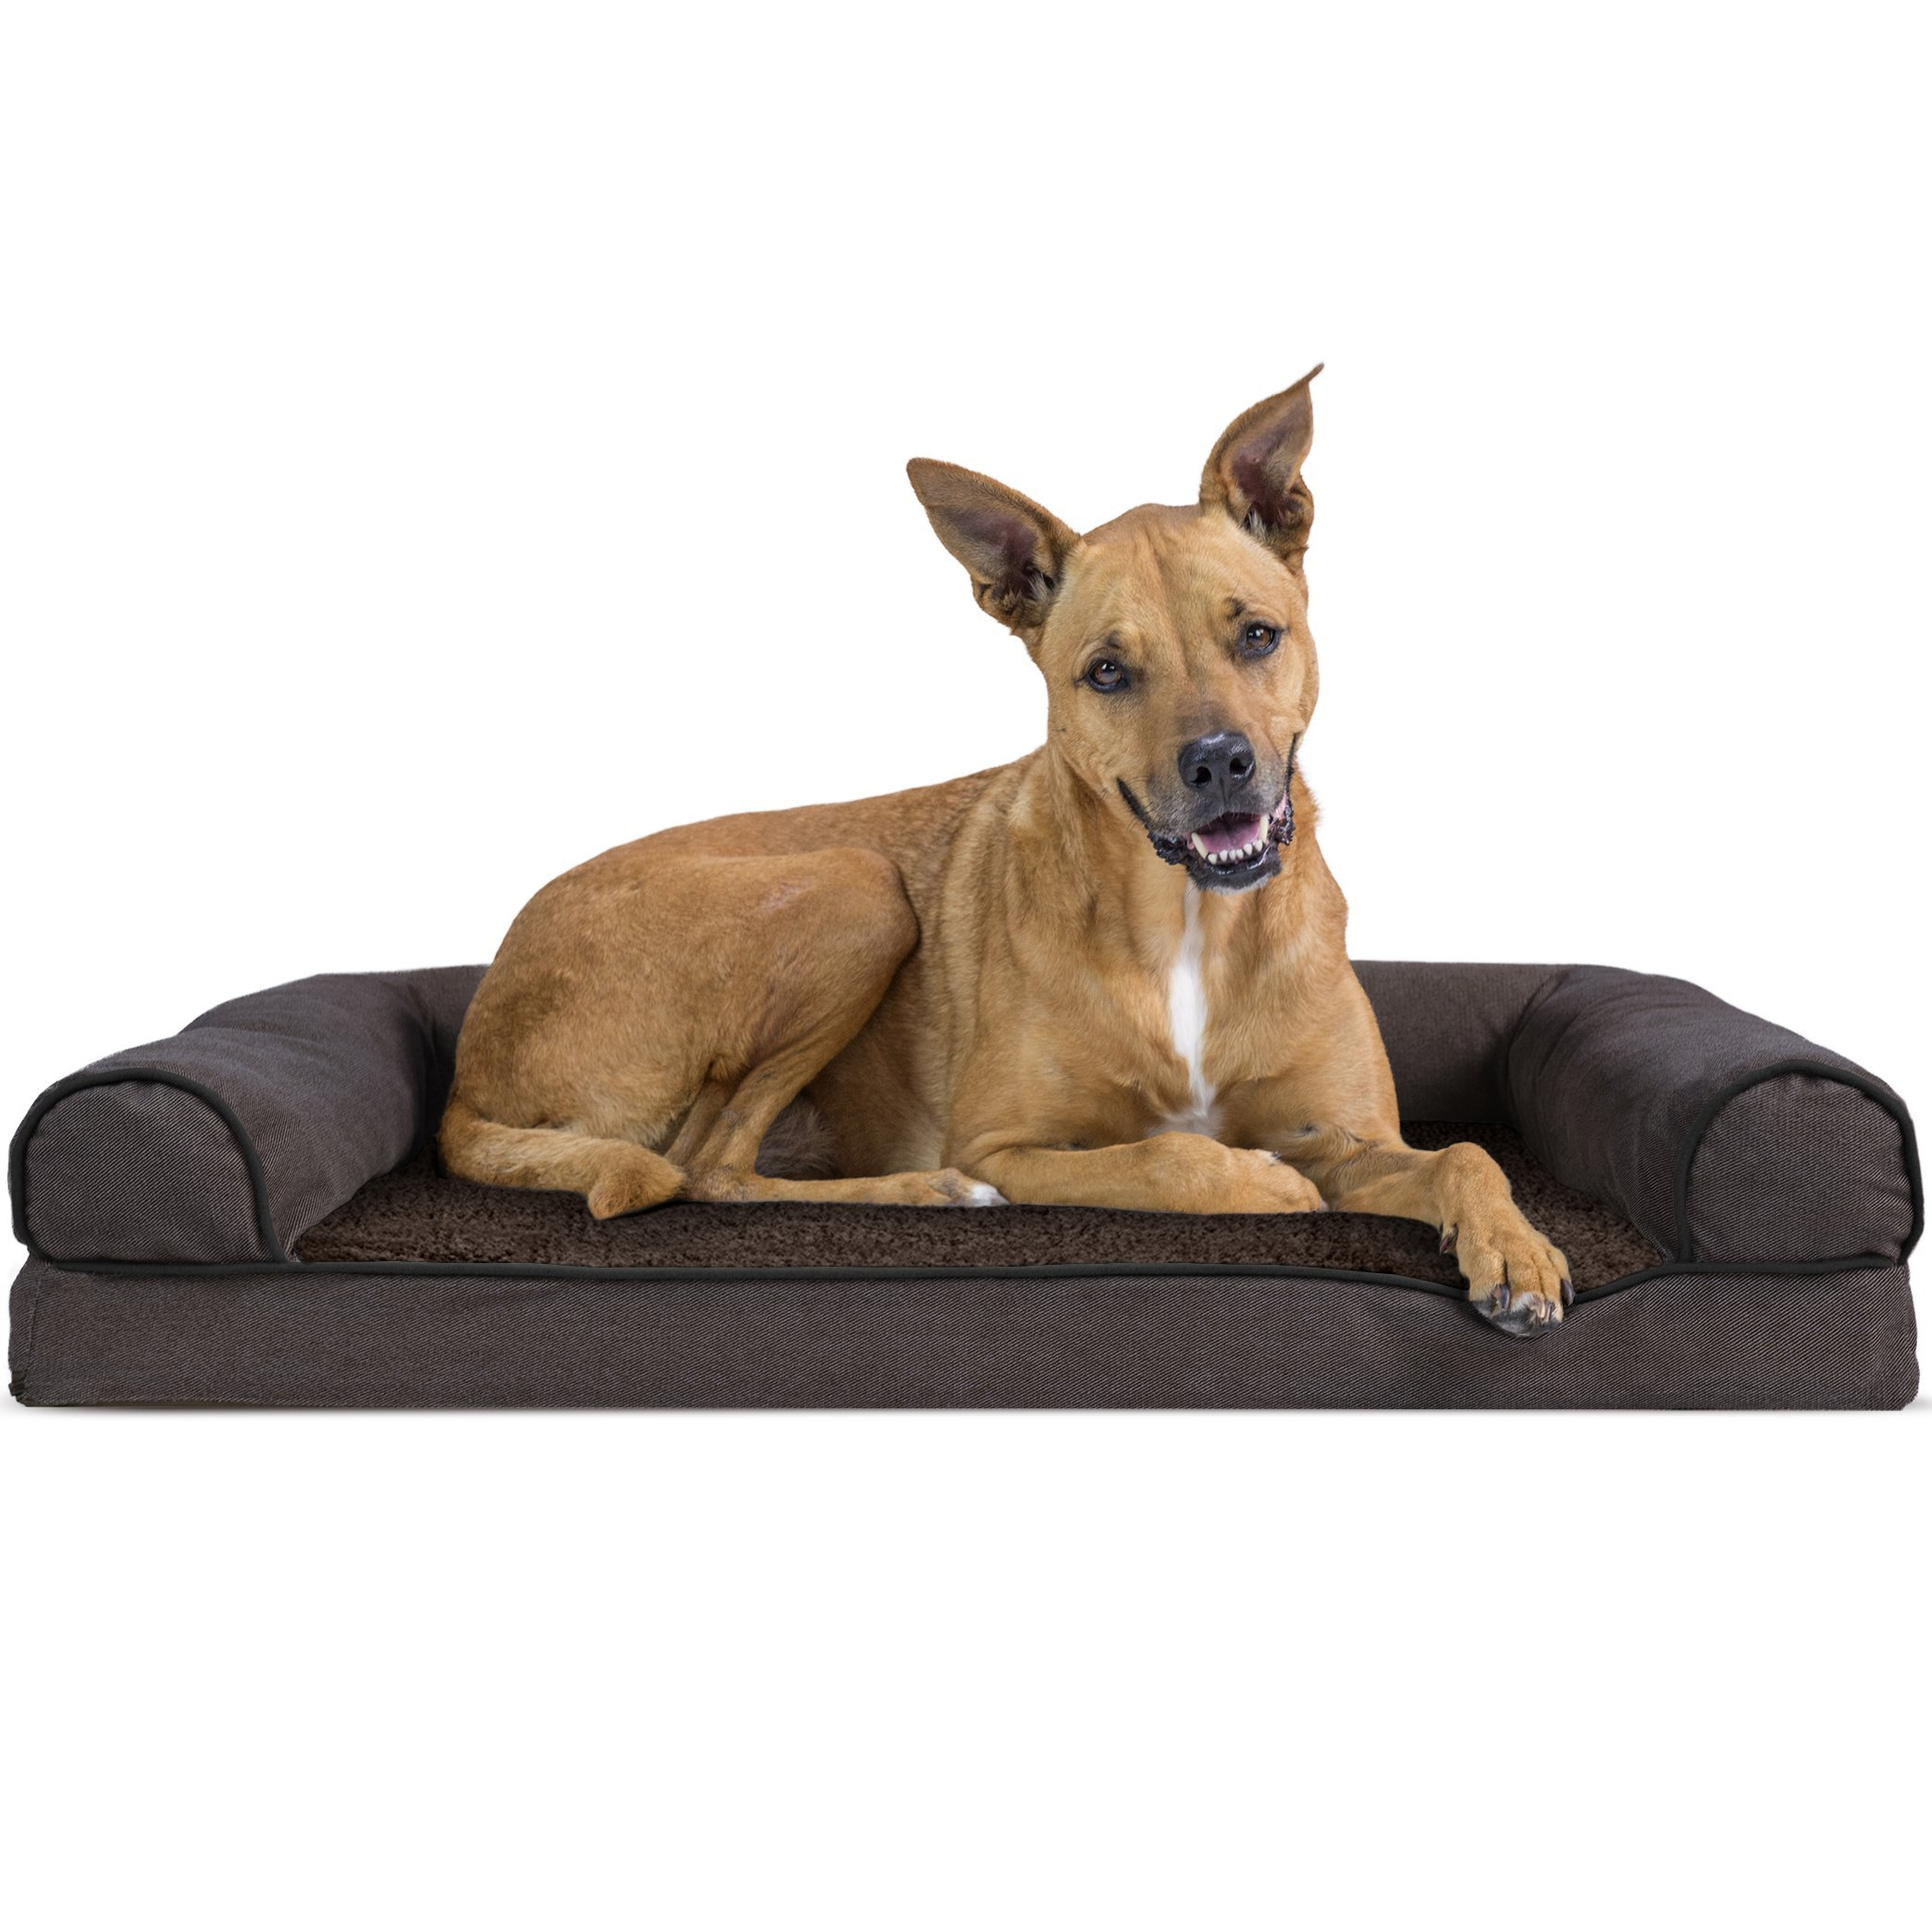 Furhaven Pet Dog Bed | Orthopedic Faux Fleece & Chenille Sofa-Style Couch Pet Bed for Dogs & Cats, Coffee, Large